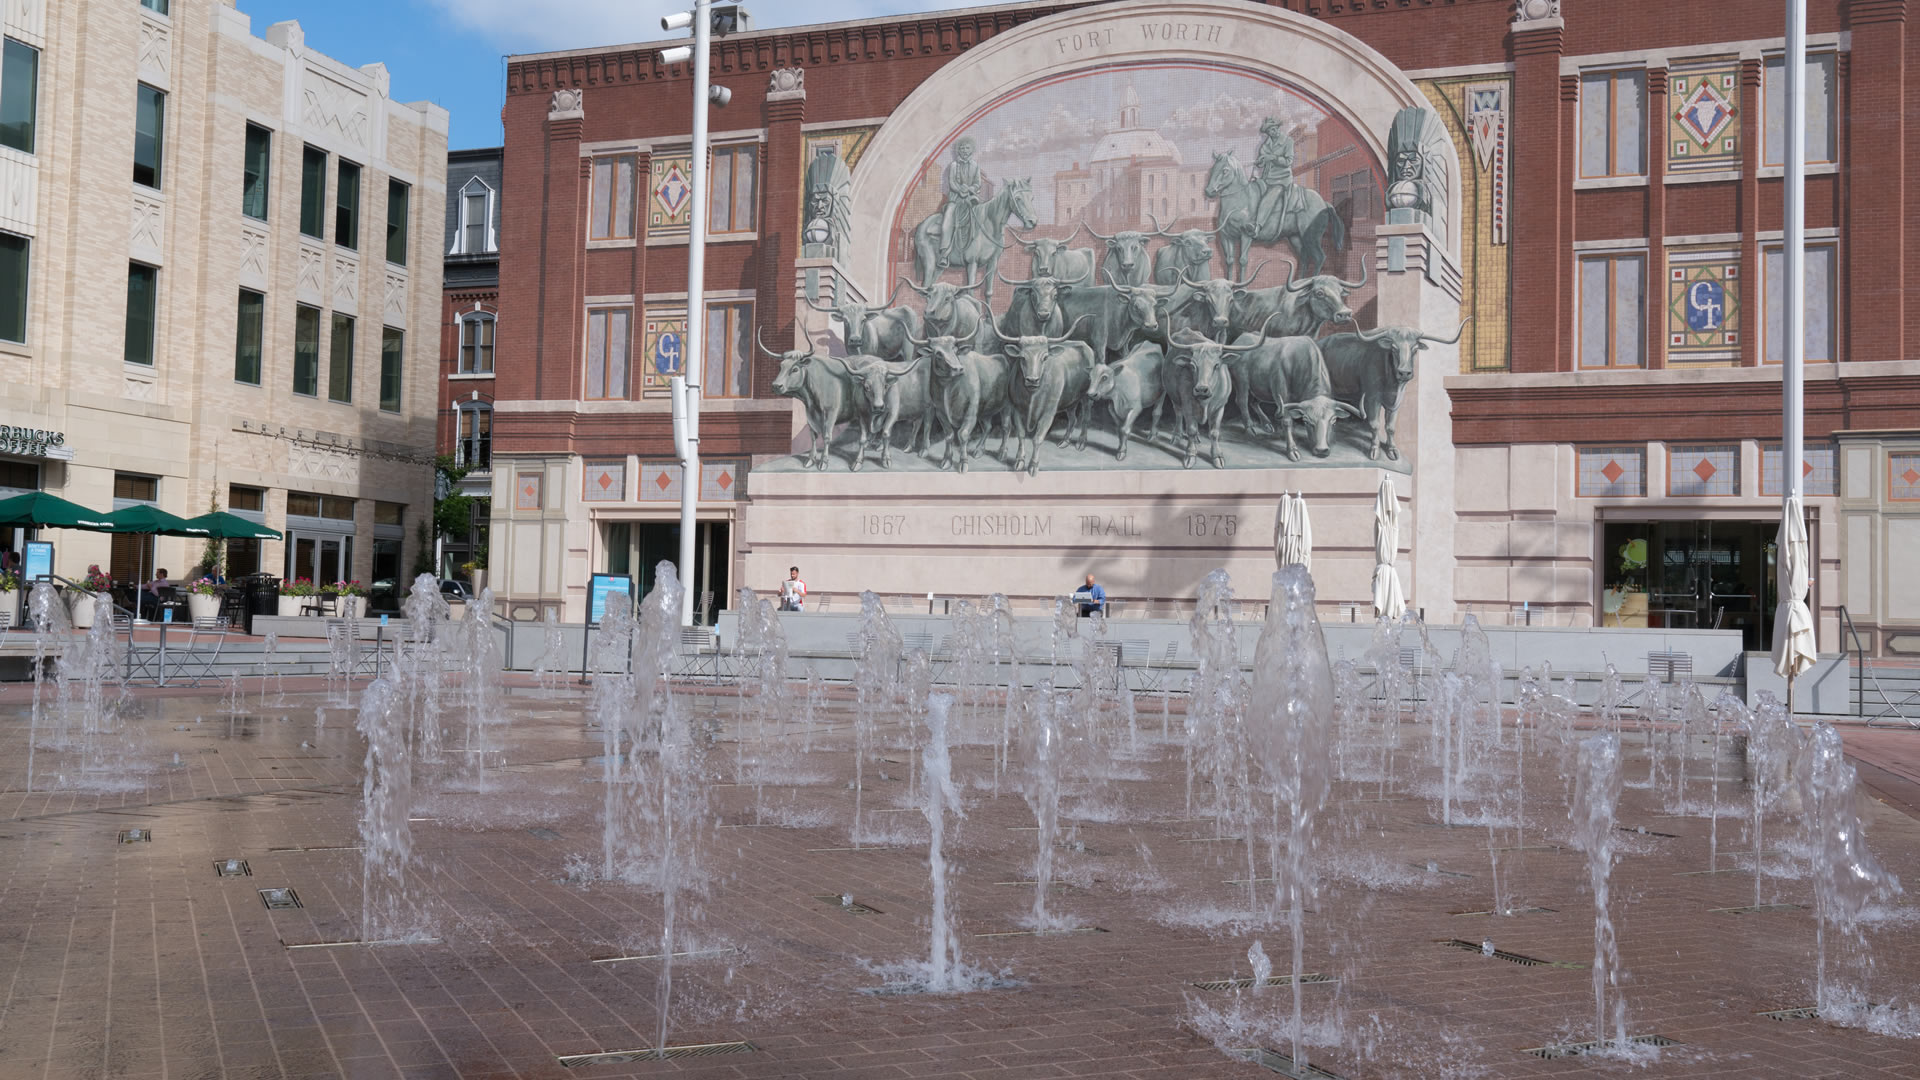 Chisholm Trail Mural at Sundance Square, Forth Worth, Texas